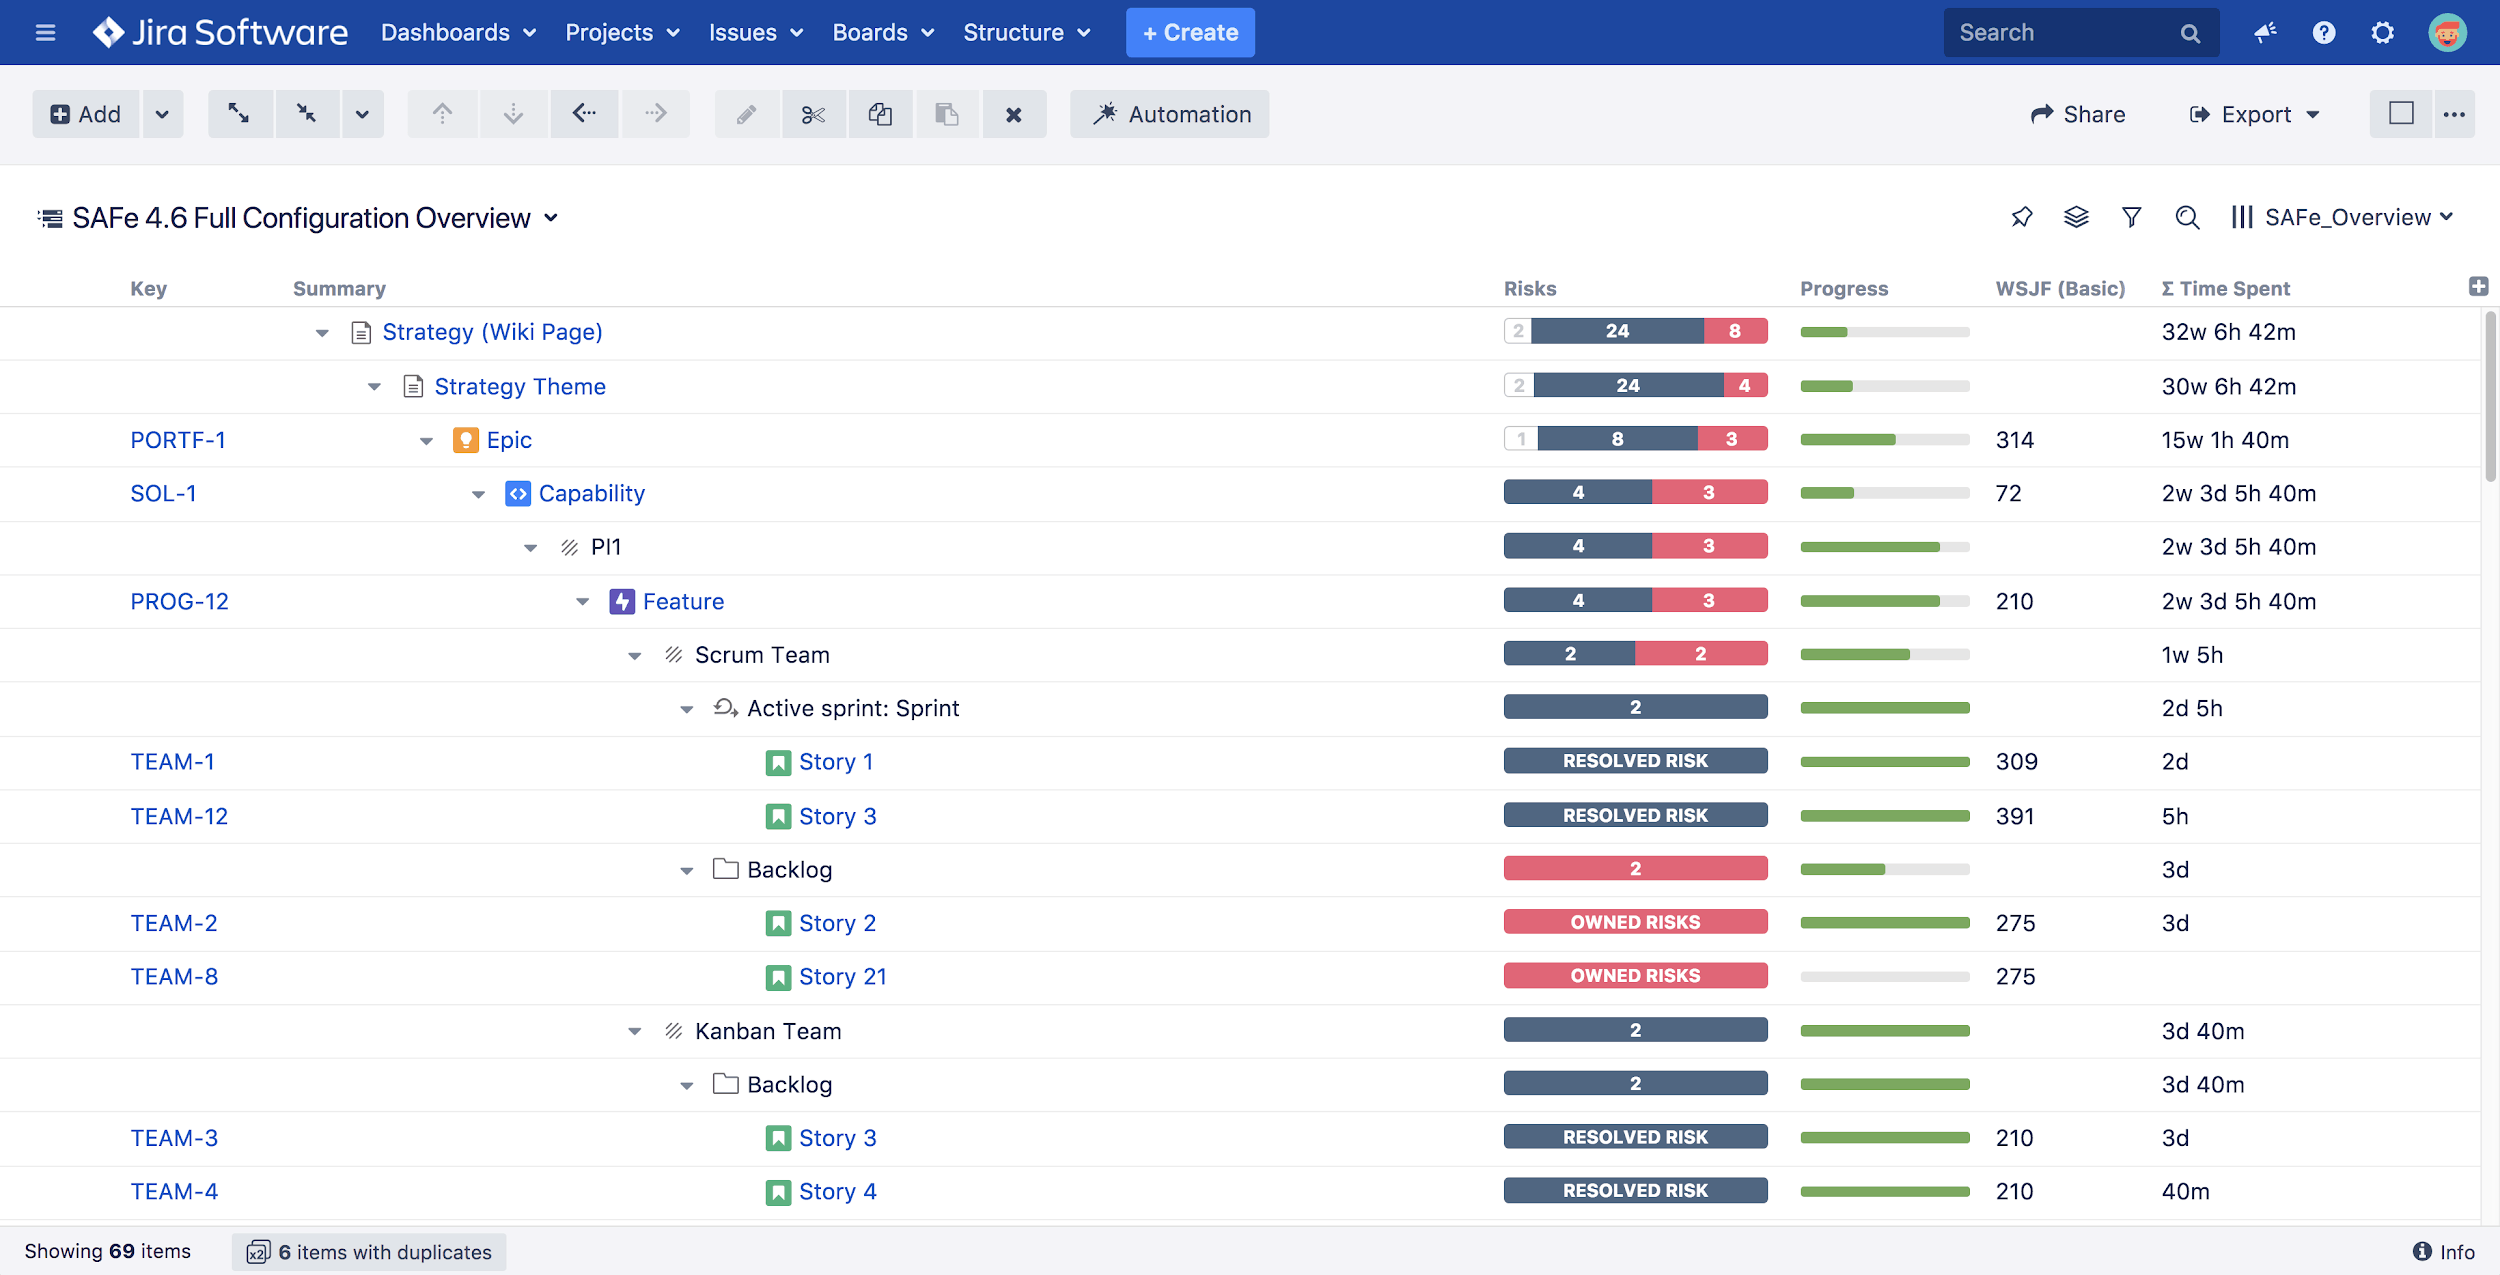 Scaled agile implementation structure for jira